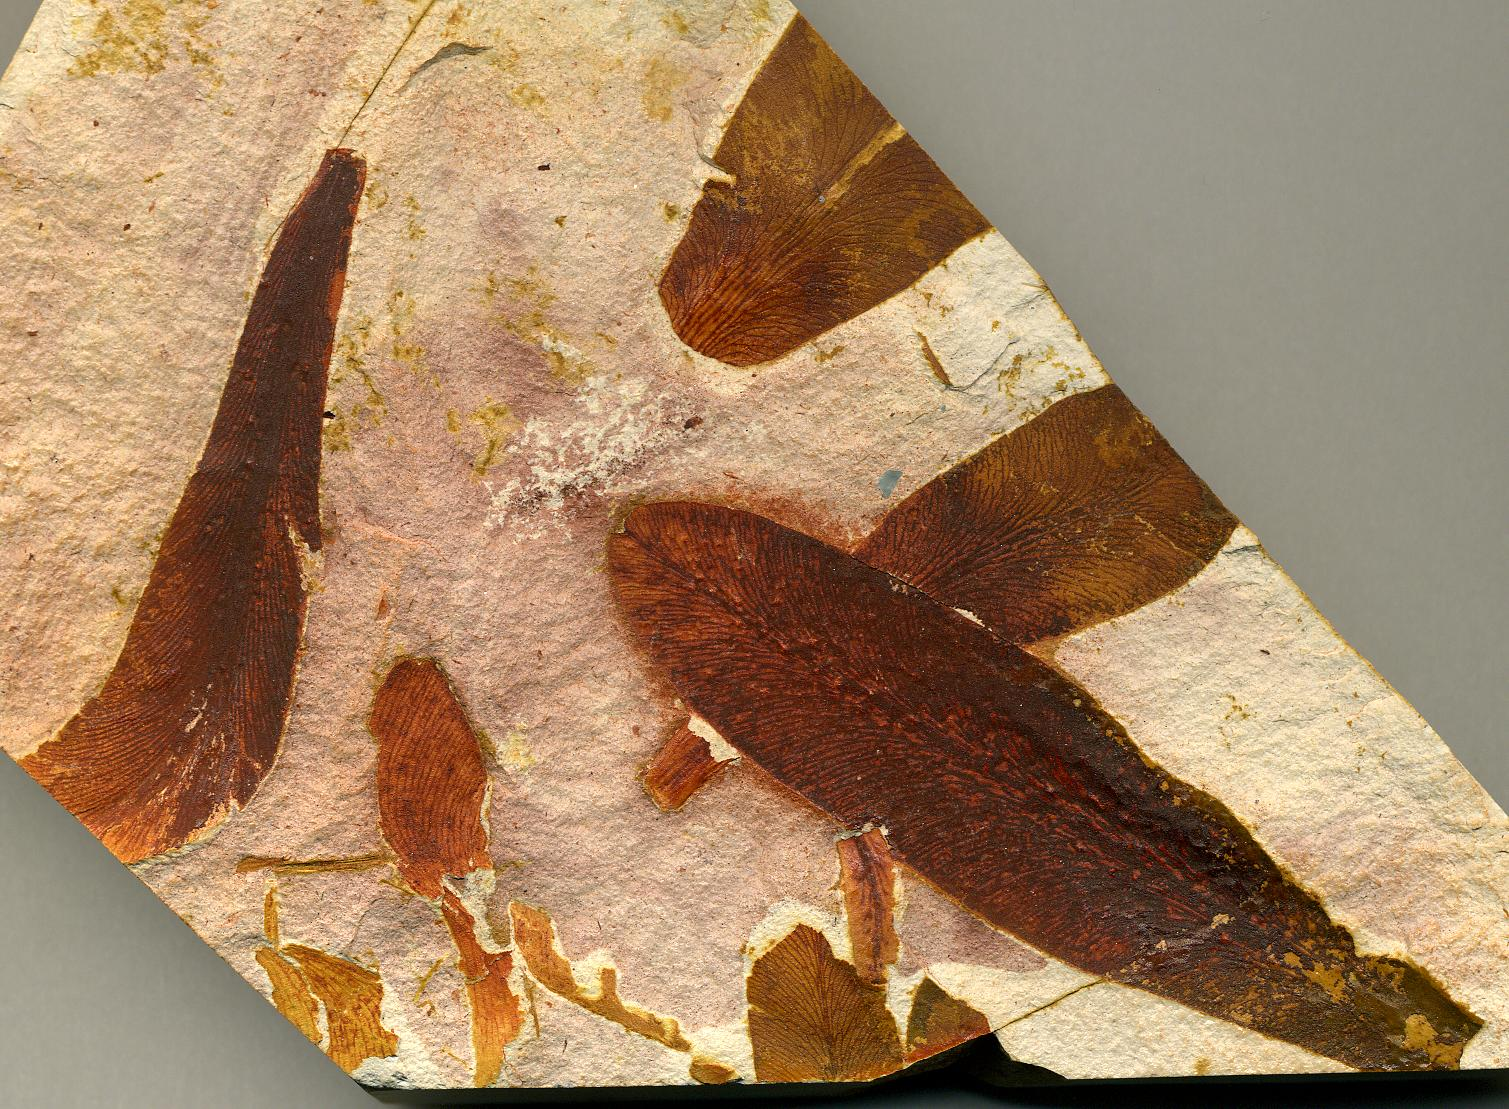 File:Glossopteris fossil seed fern leaves in claystone ...